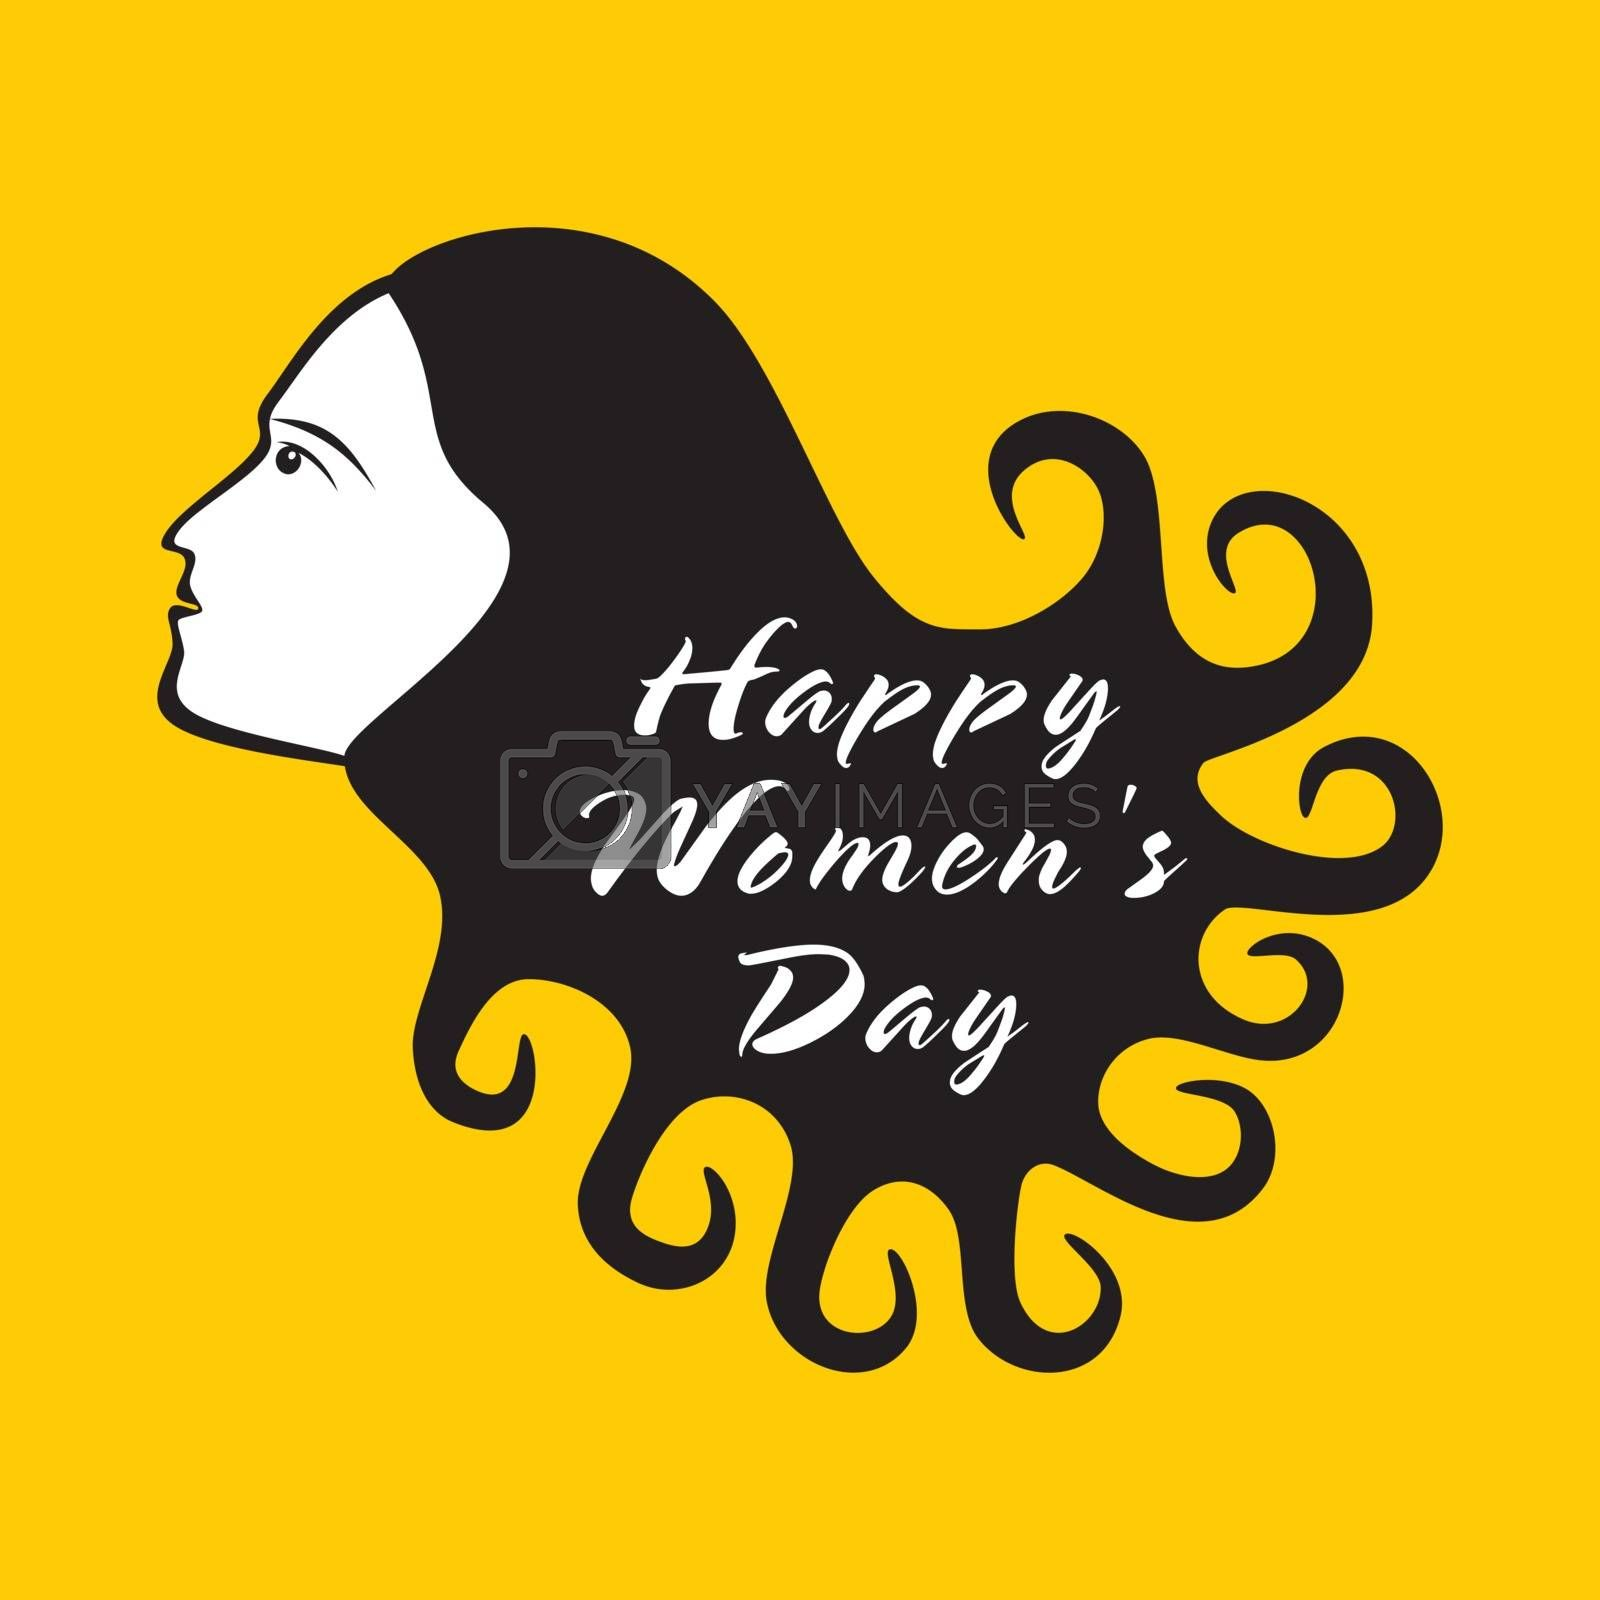 happy women day design , women with curly hair design vector